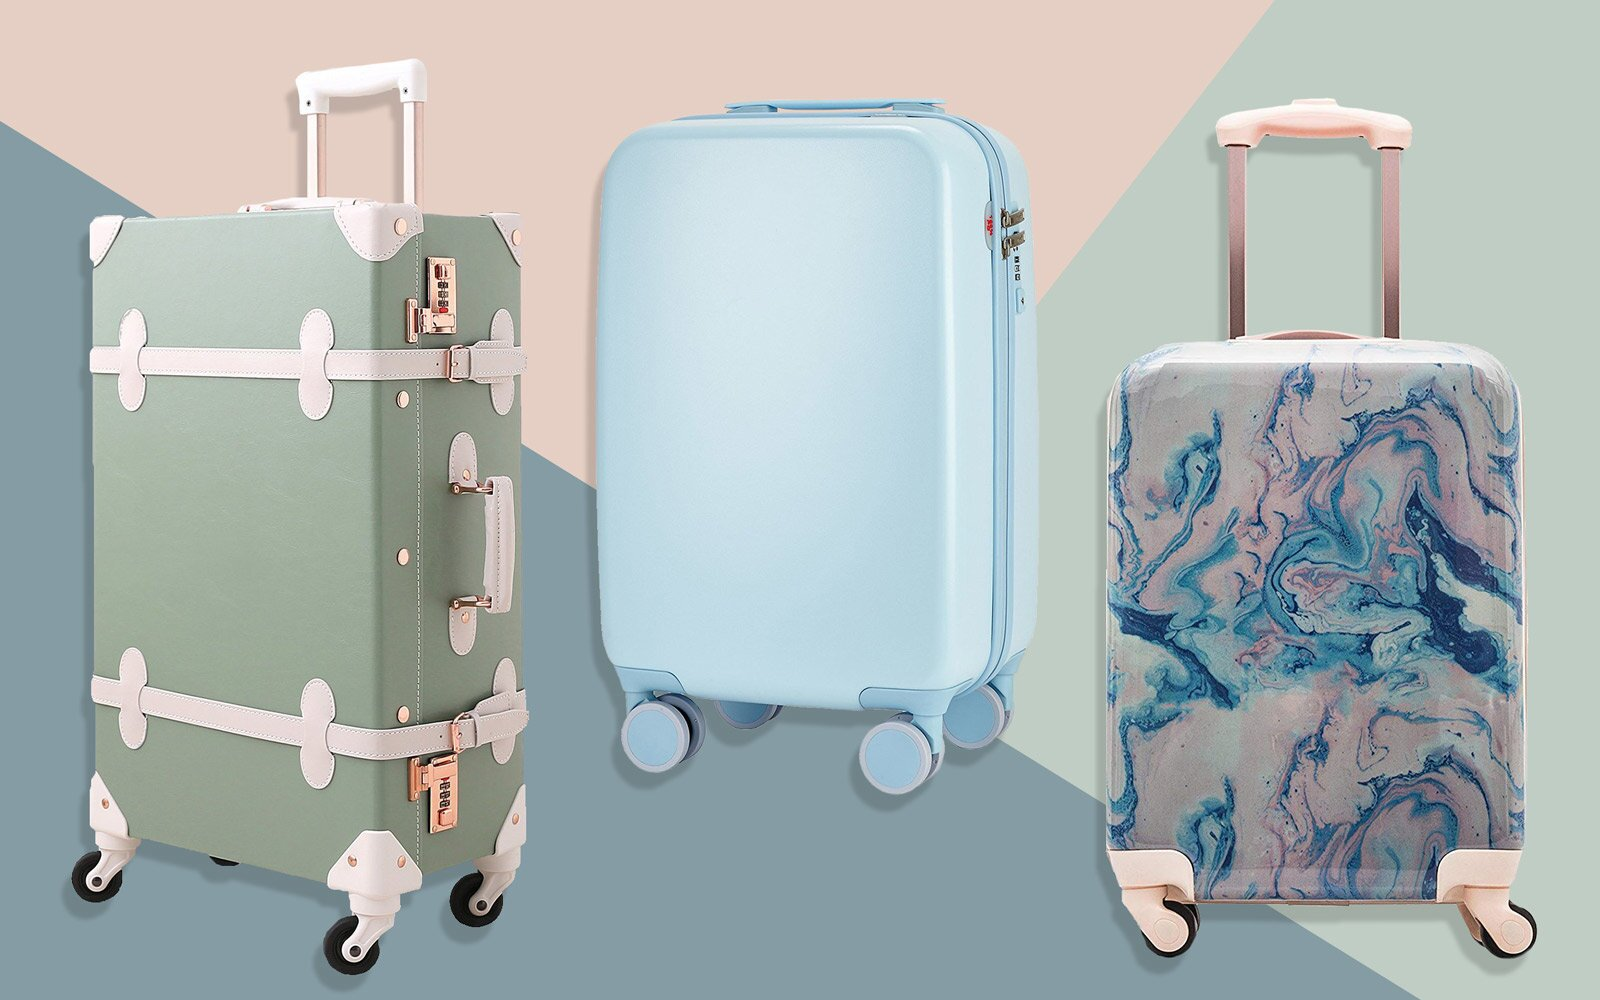 76d86c76d7ff 15 Cute Suitcases You Won't Believe We Found on Amazon | Travel + ...